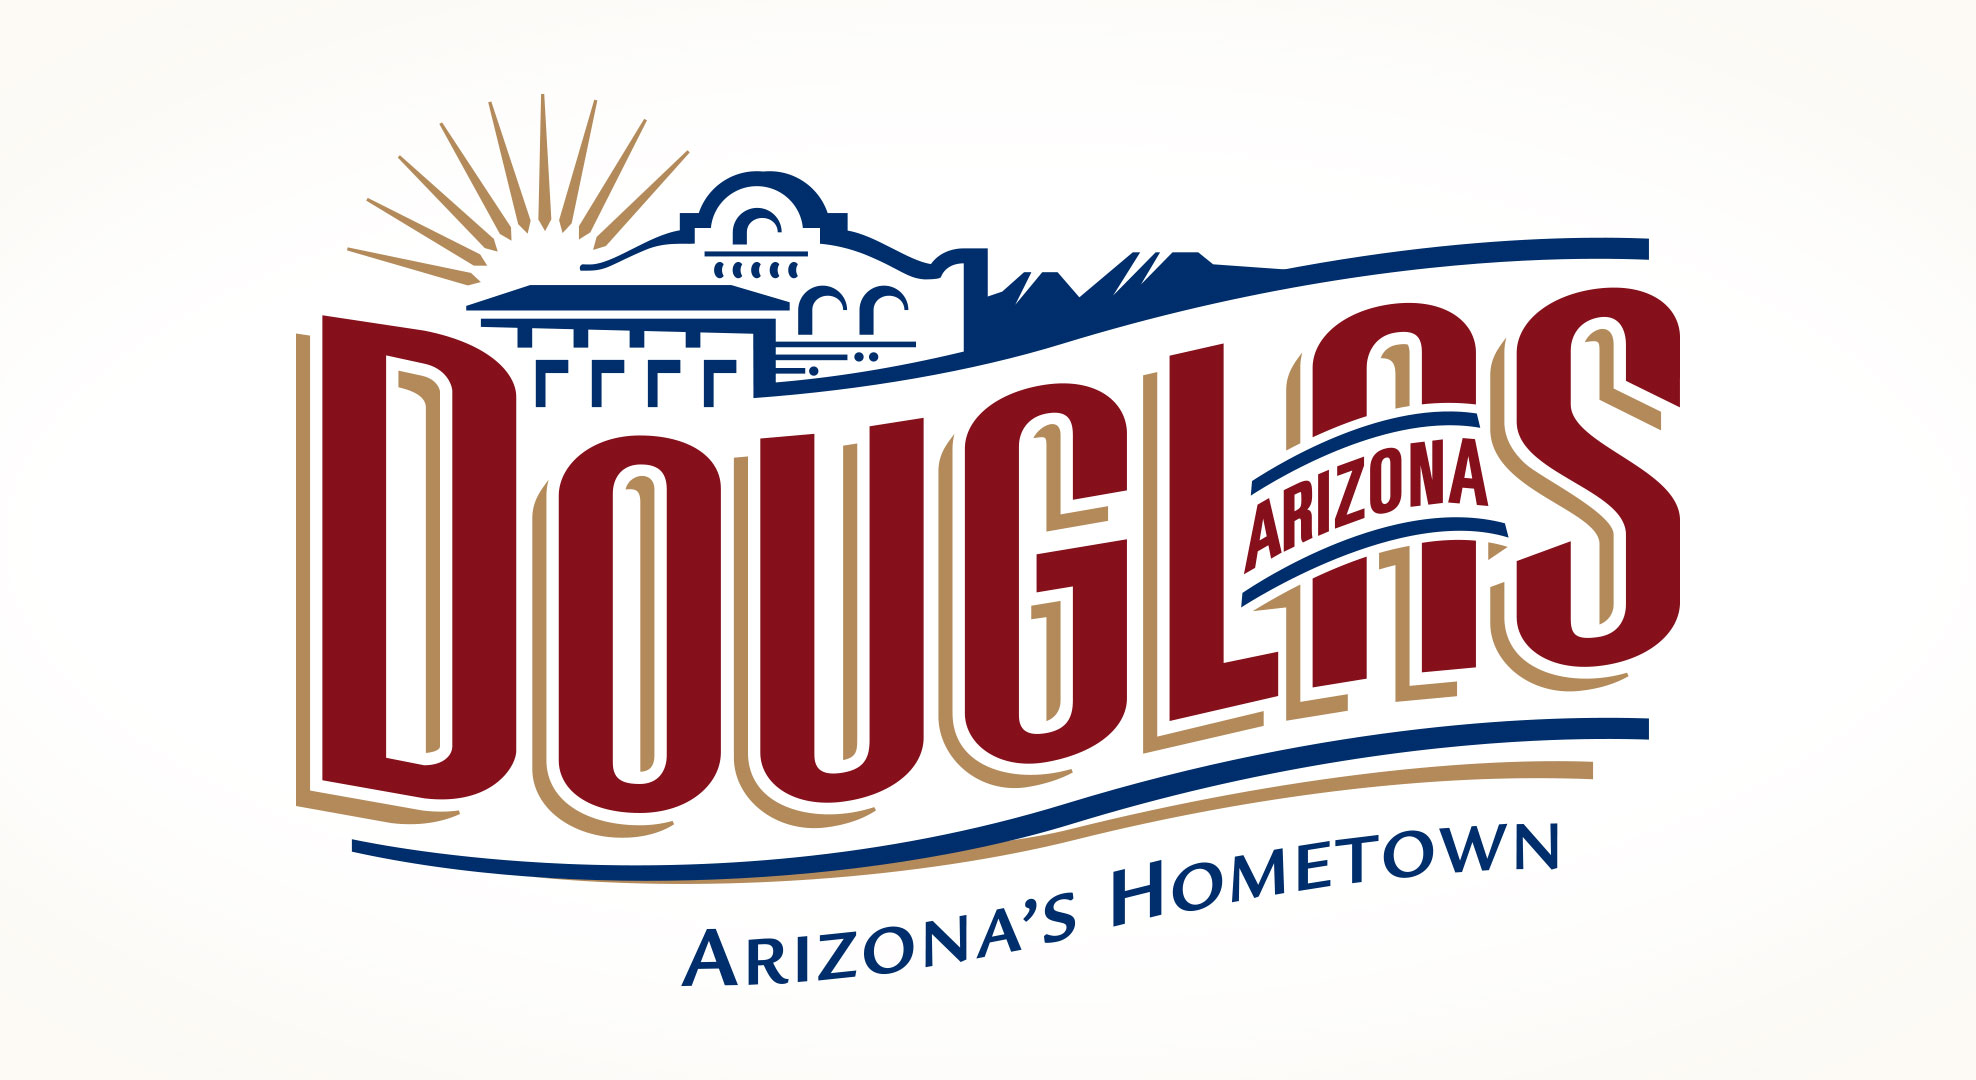 City of Douglas, Arizona